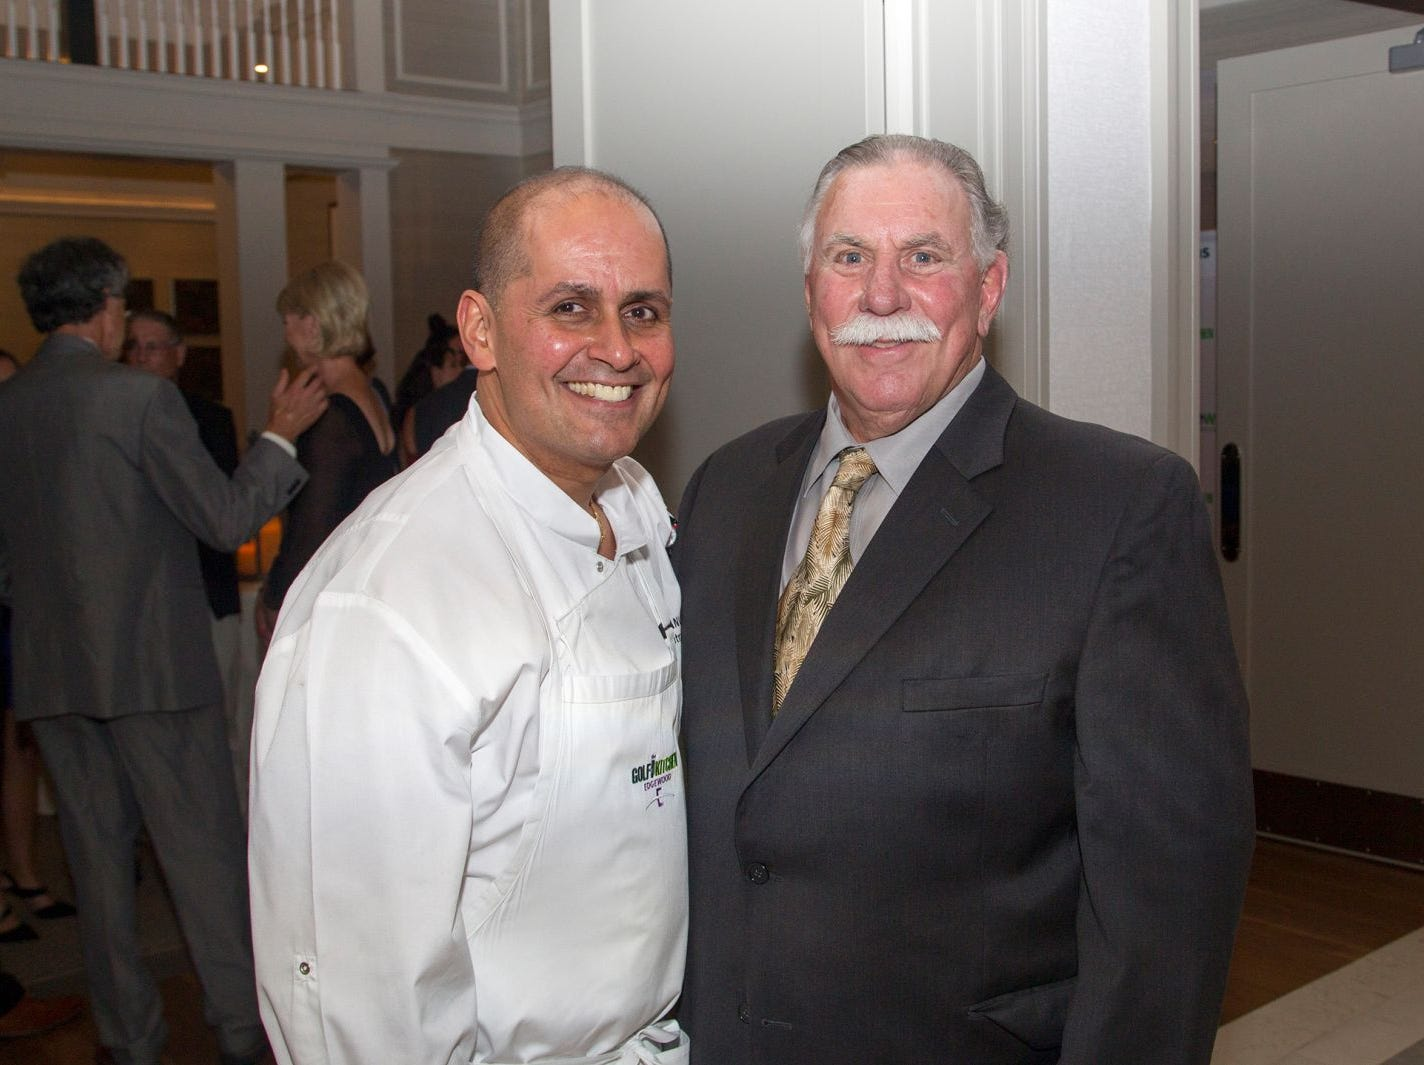 "Chef Anthony Villaneueva and Giuillermo Nestor. Edgewood Country Club, in partnership with Golf Kitchen magazine, host the ""Golf Kitchen/Edgewood Fine Dining Soirée and Golf Kitchen Culinary Excellence Awards."" 10/04/2018"